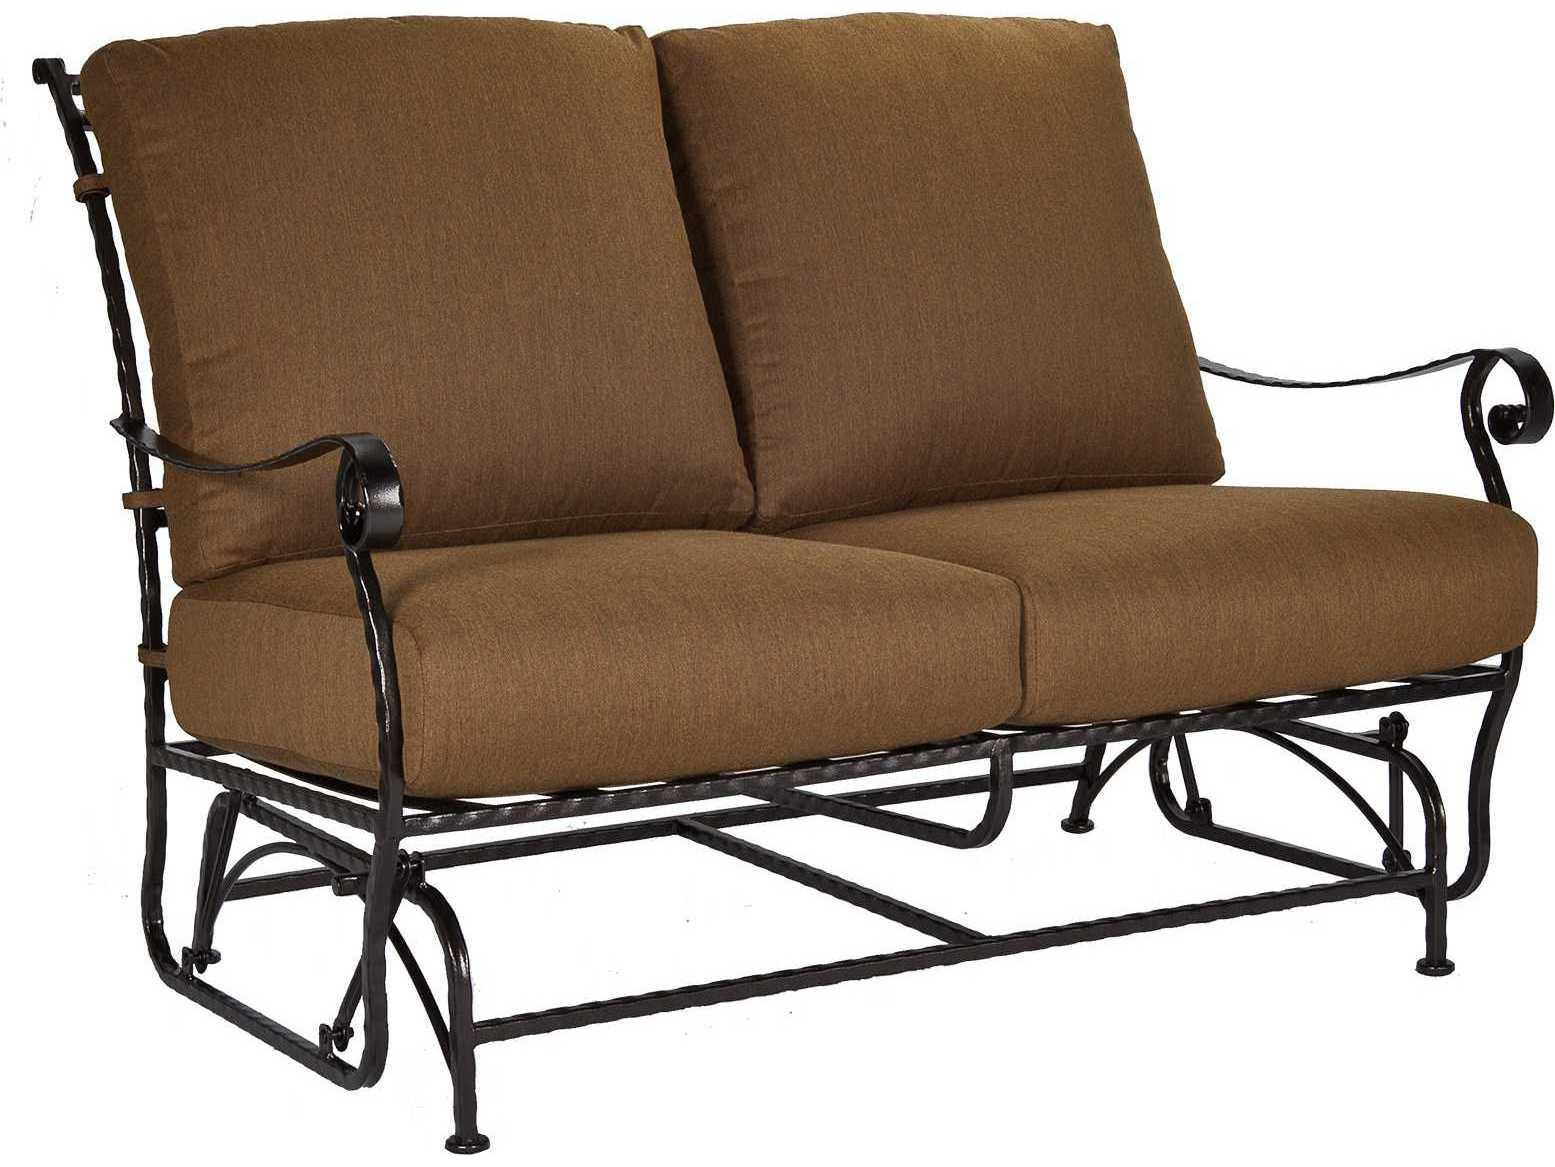 OW Lee San Cristobal Glider Loveseat Replacement Cushions